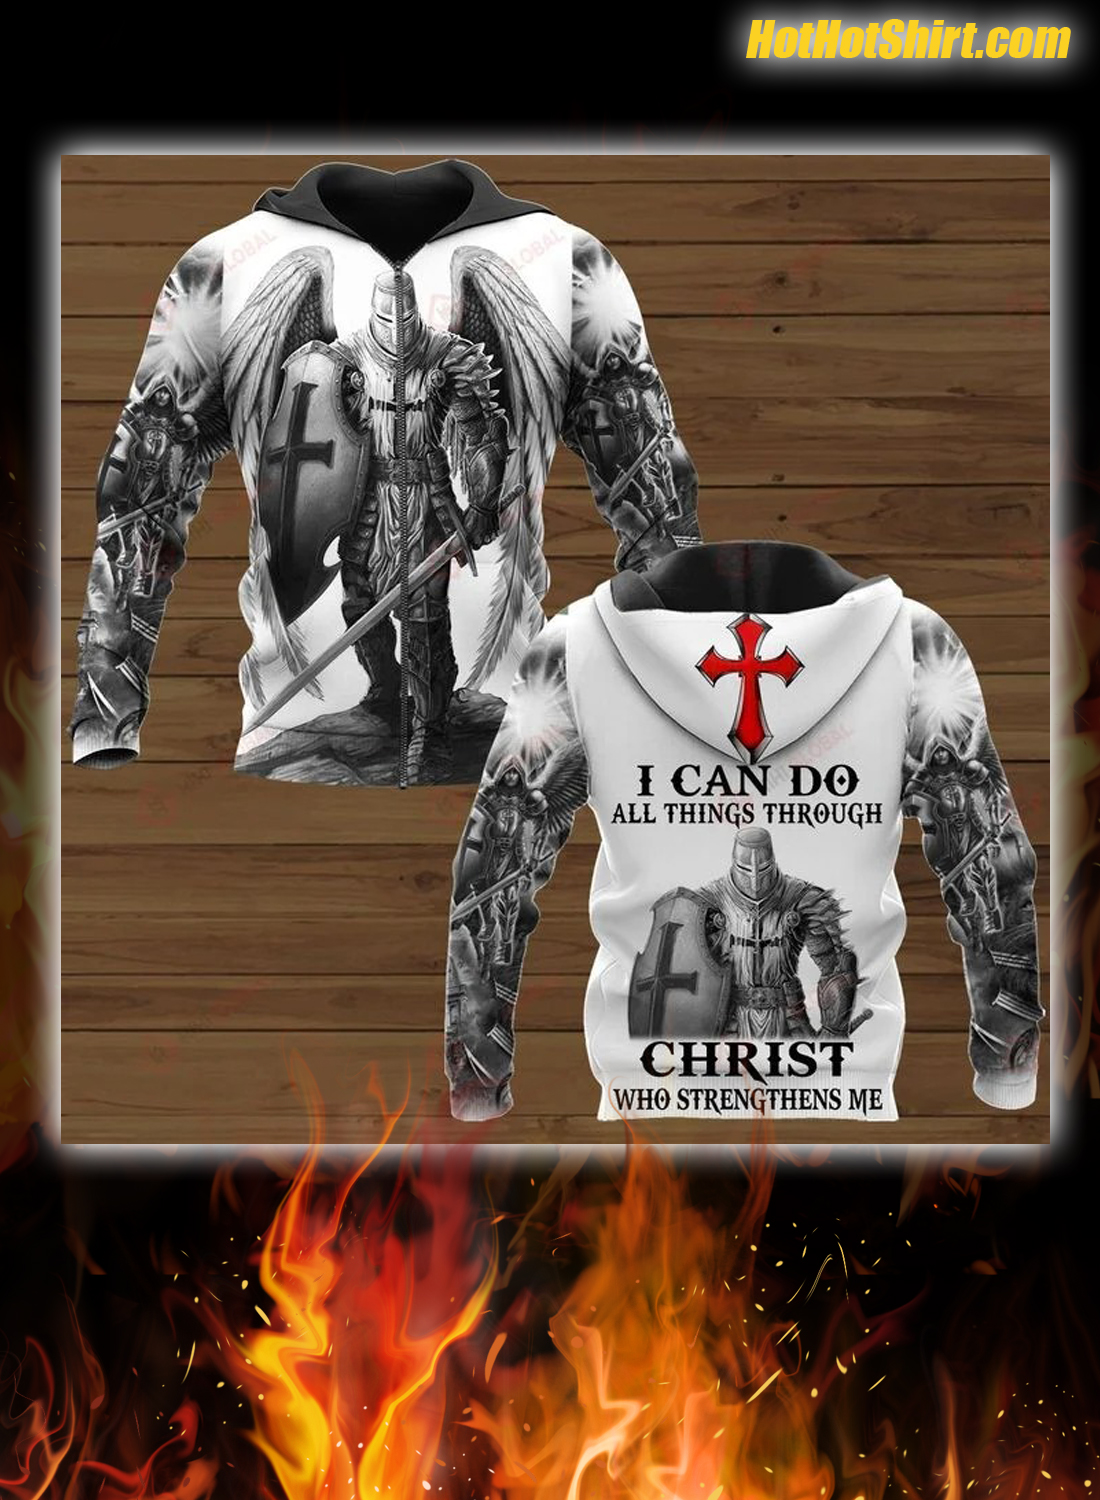 Knights Templar I Can Do All Things Through Christ Who Strengthens Me 3D Hoodie and Shirt 1